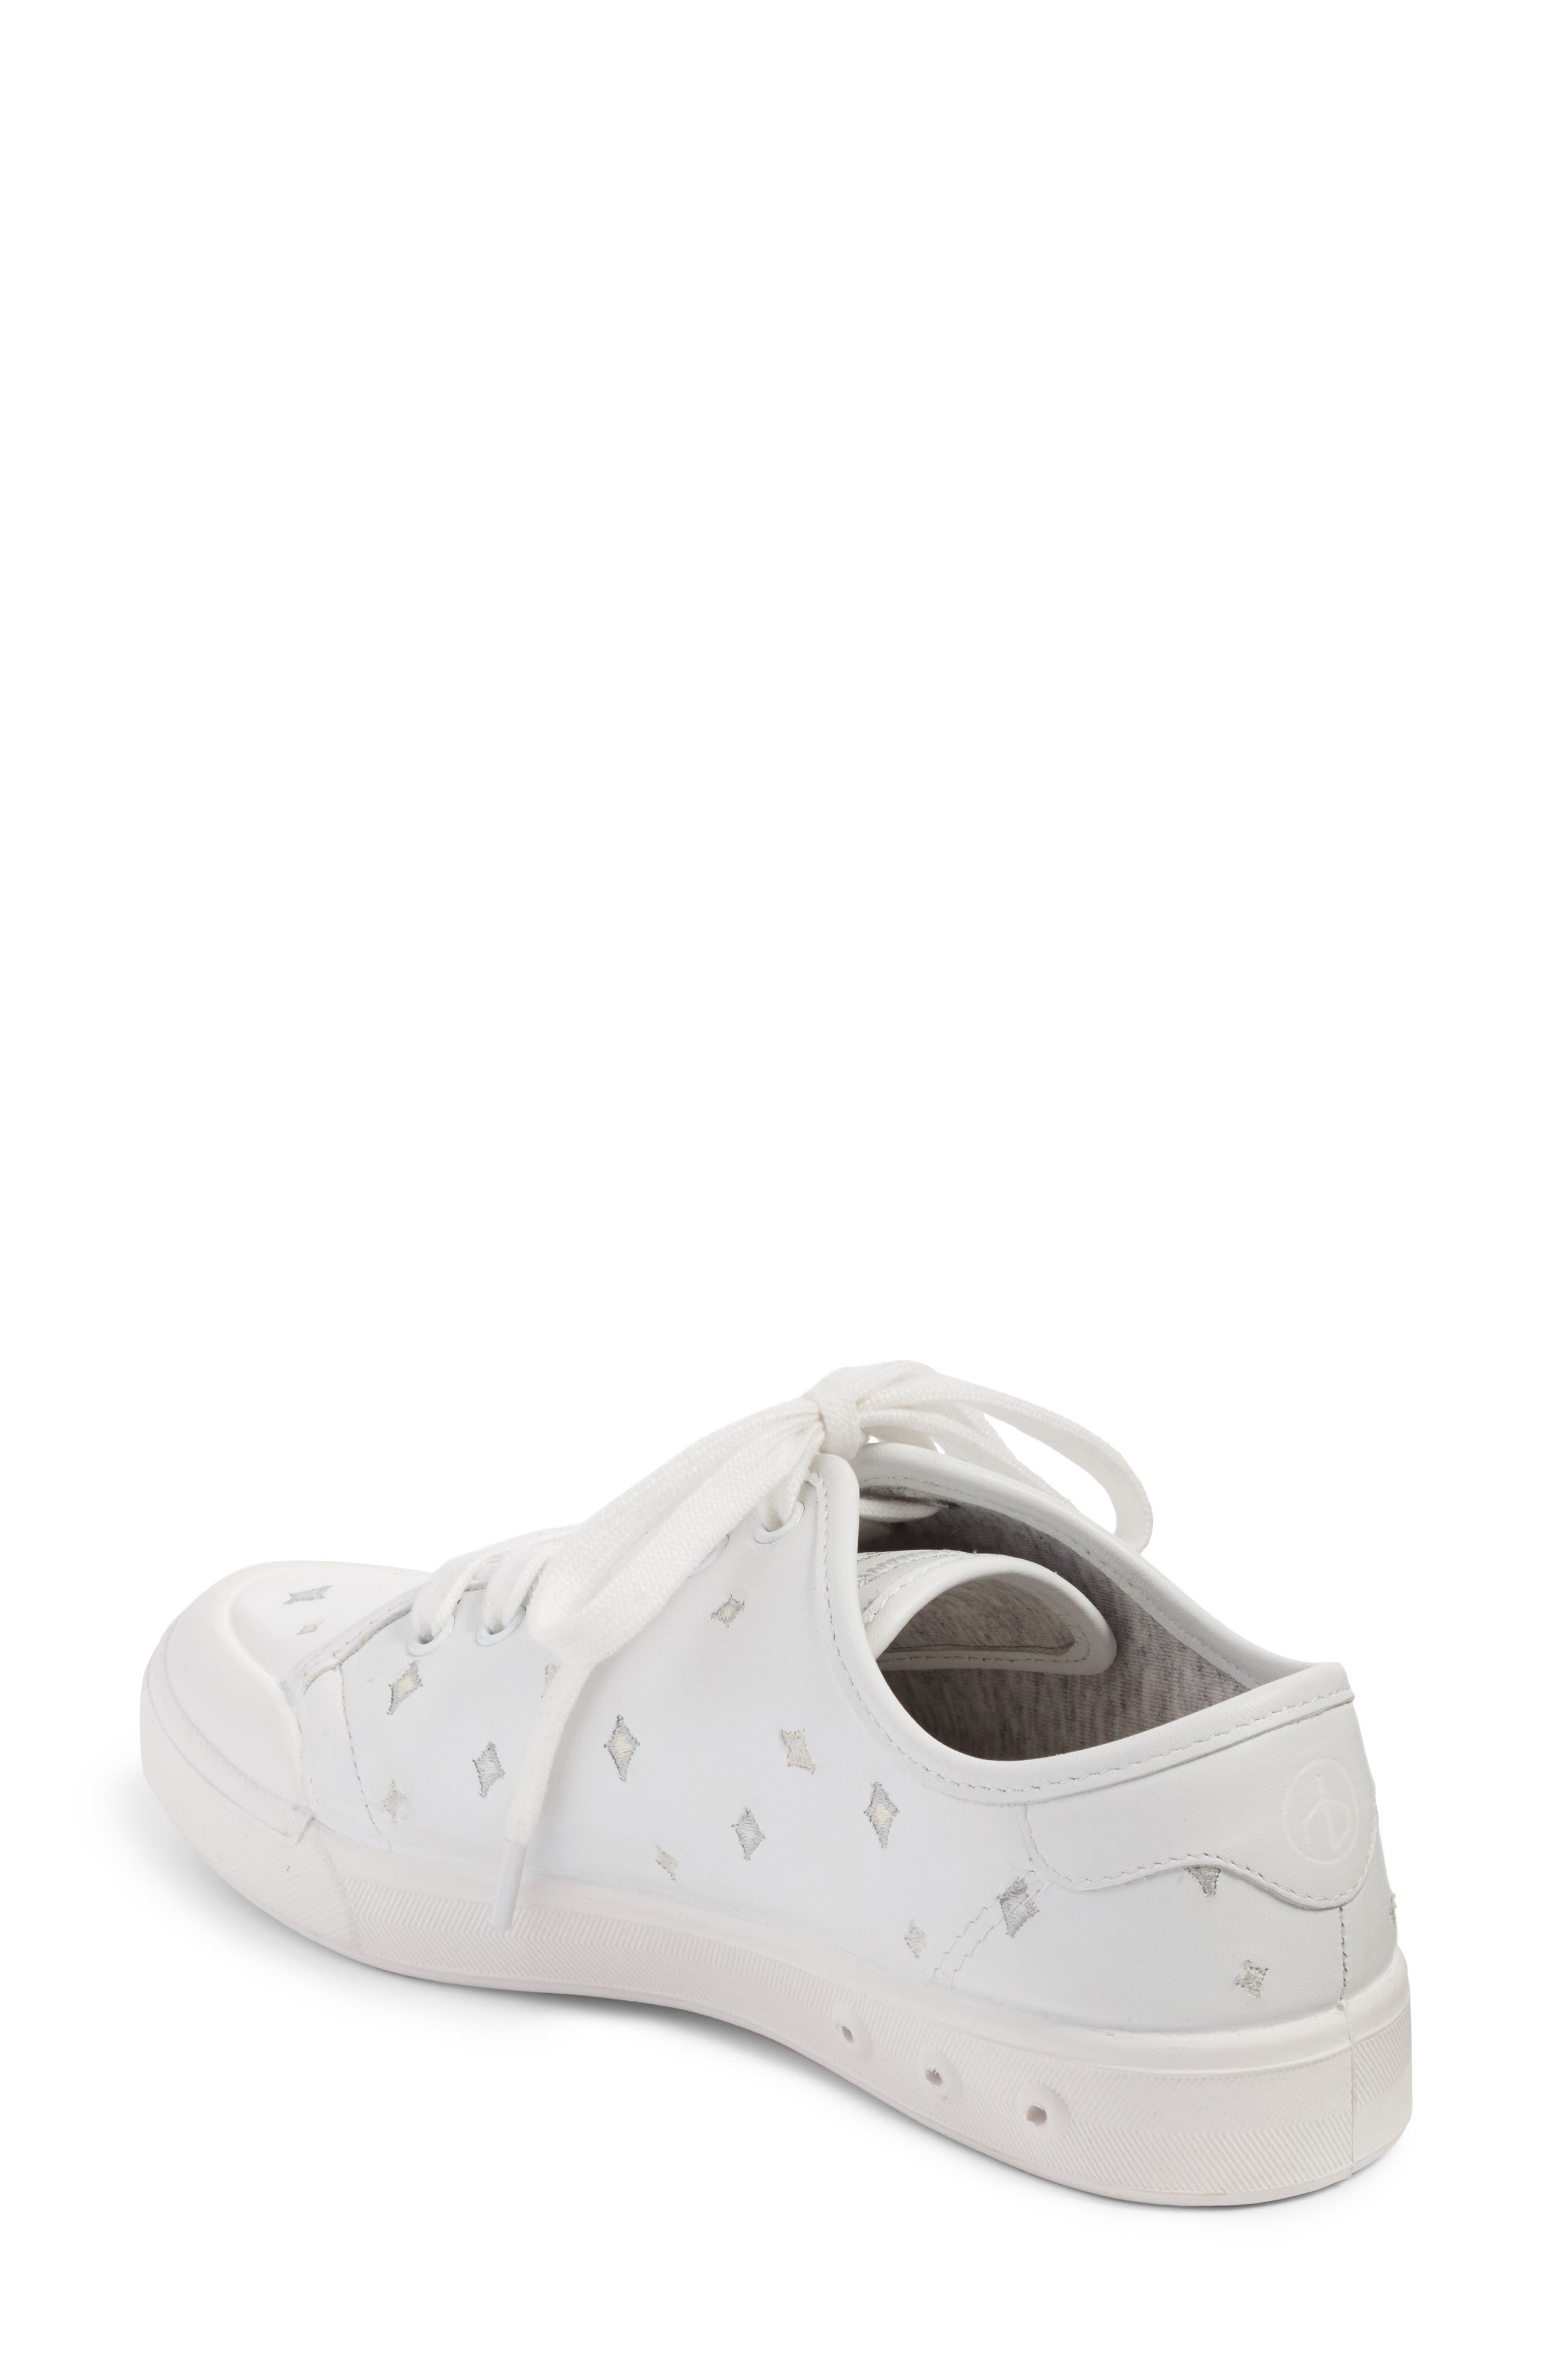 Embroidered Standard Issue Sneaker,                             Alternate thumbnail 2, color,                             129